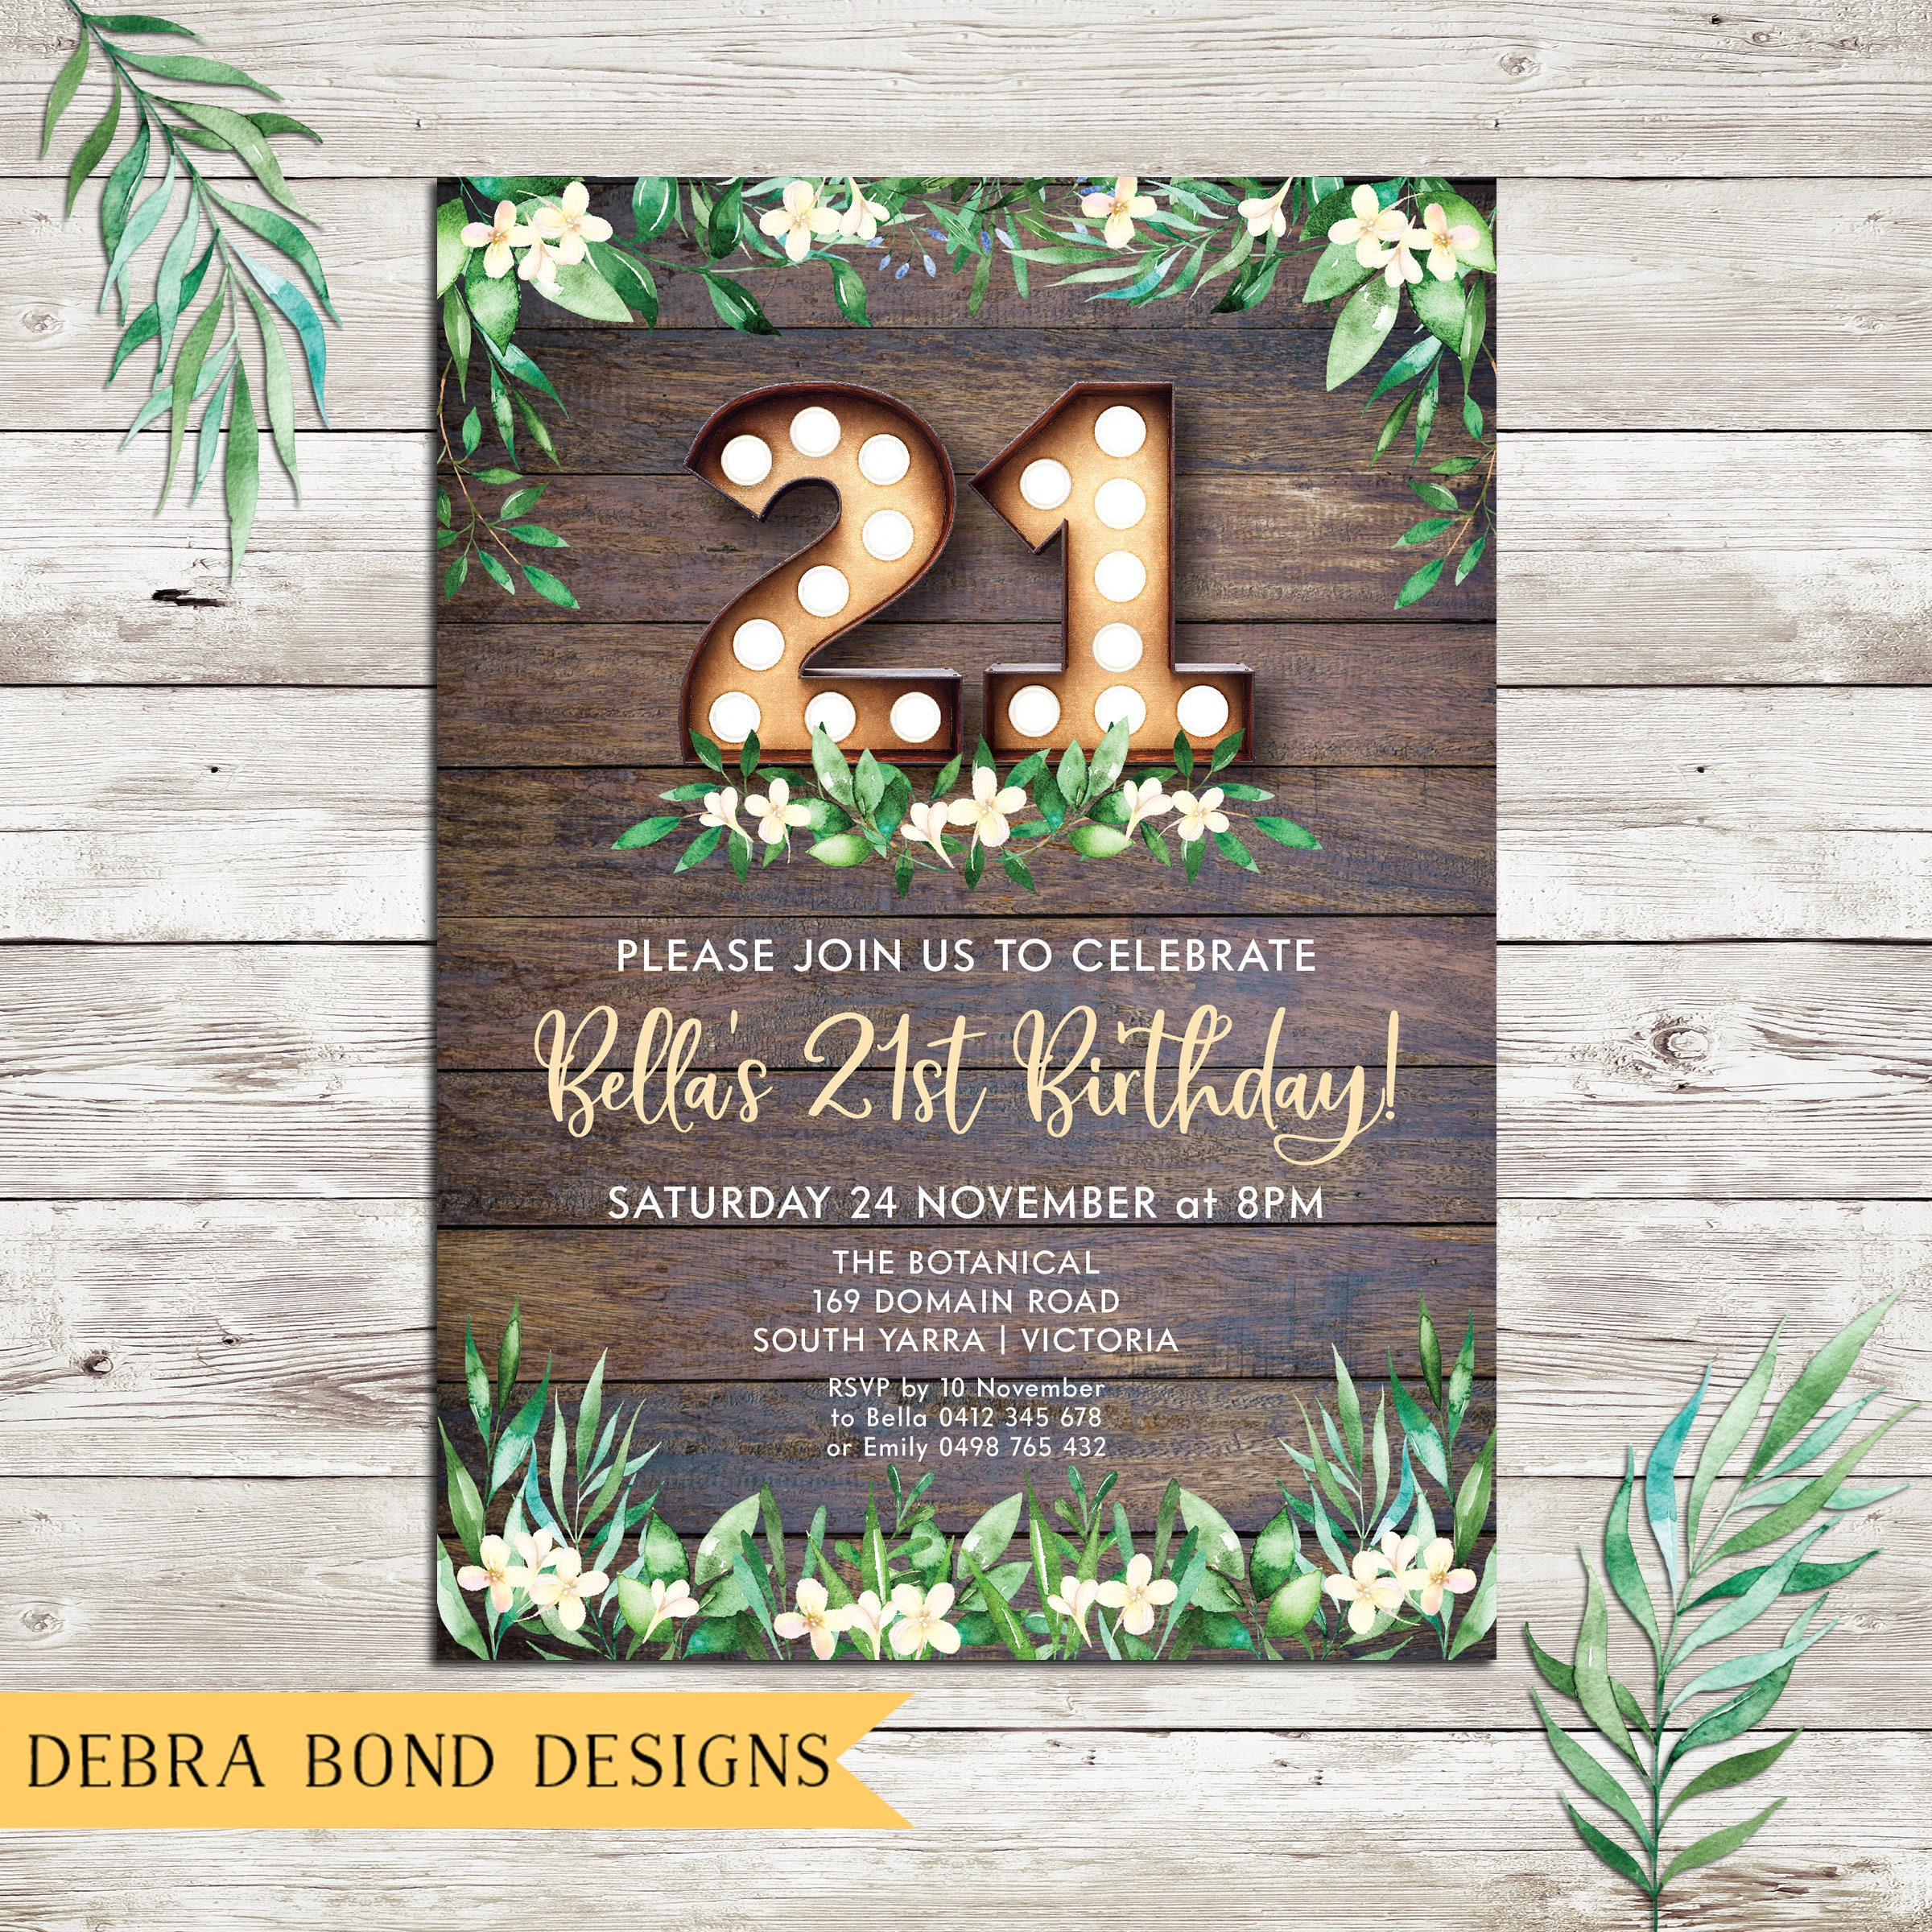 Rustic invitation birthday invitation marquee lights 18th rustic invitation birthday invitation marquee lights 18th birthday 21st birthday any age 30th 40th 50th 60th 70th digital printable filmwisefo